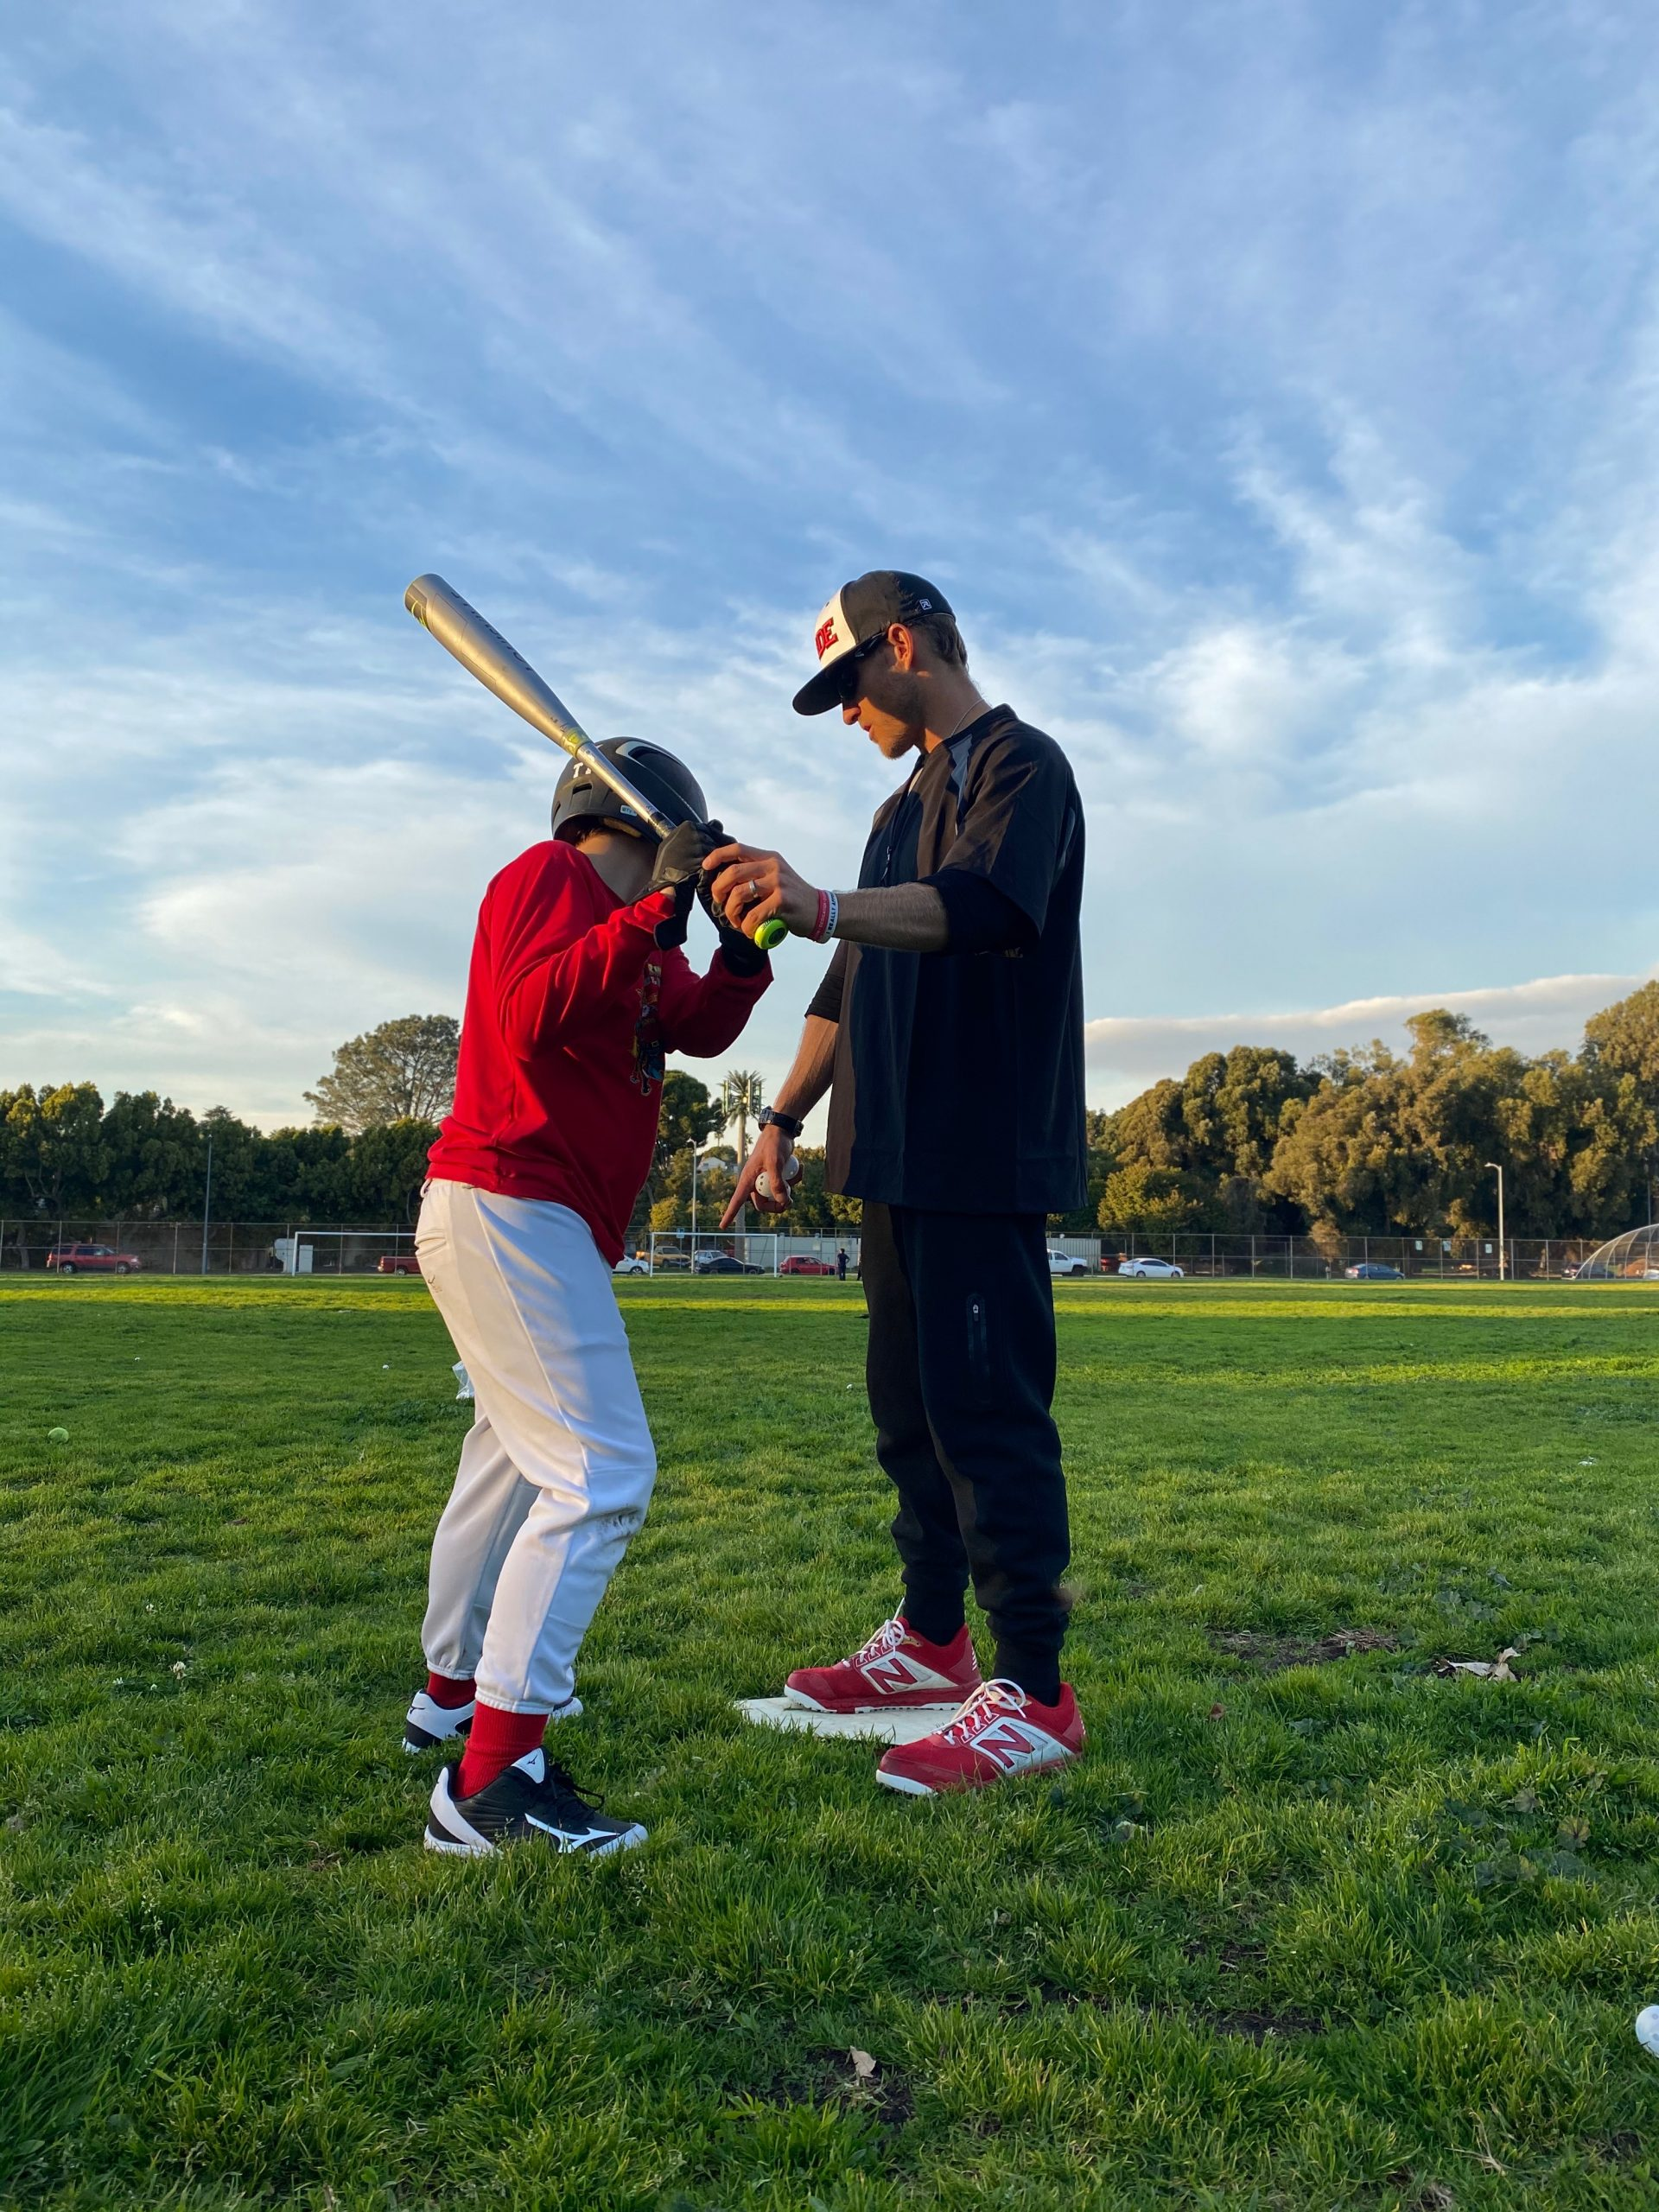 Hitting Lessons in Marina Del Rey